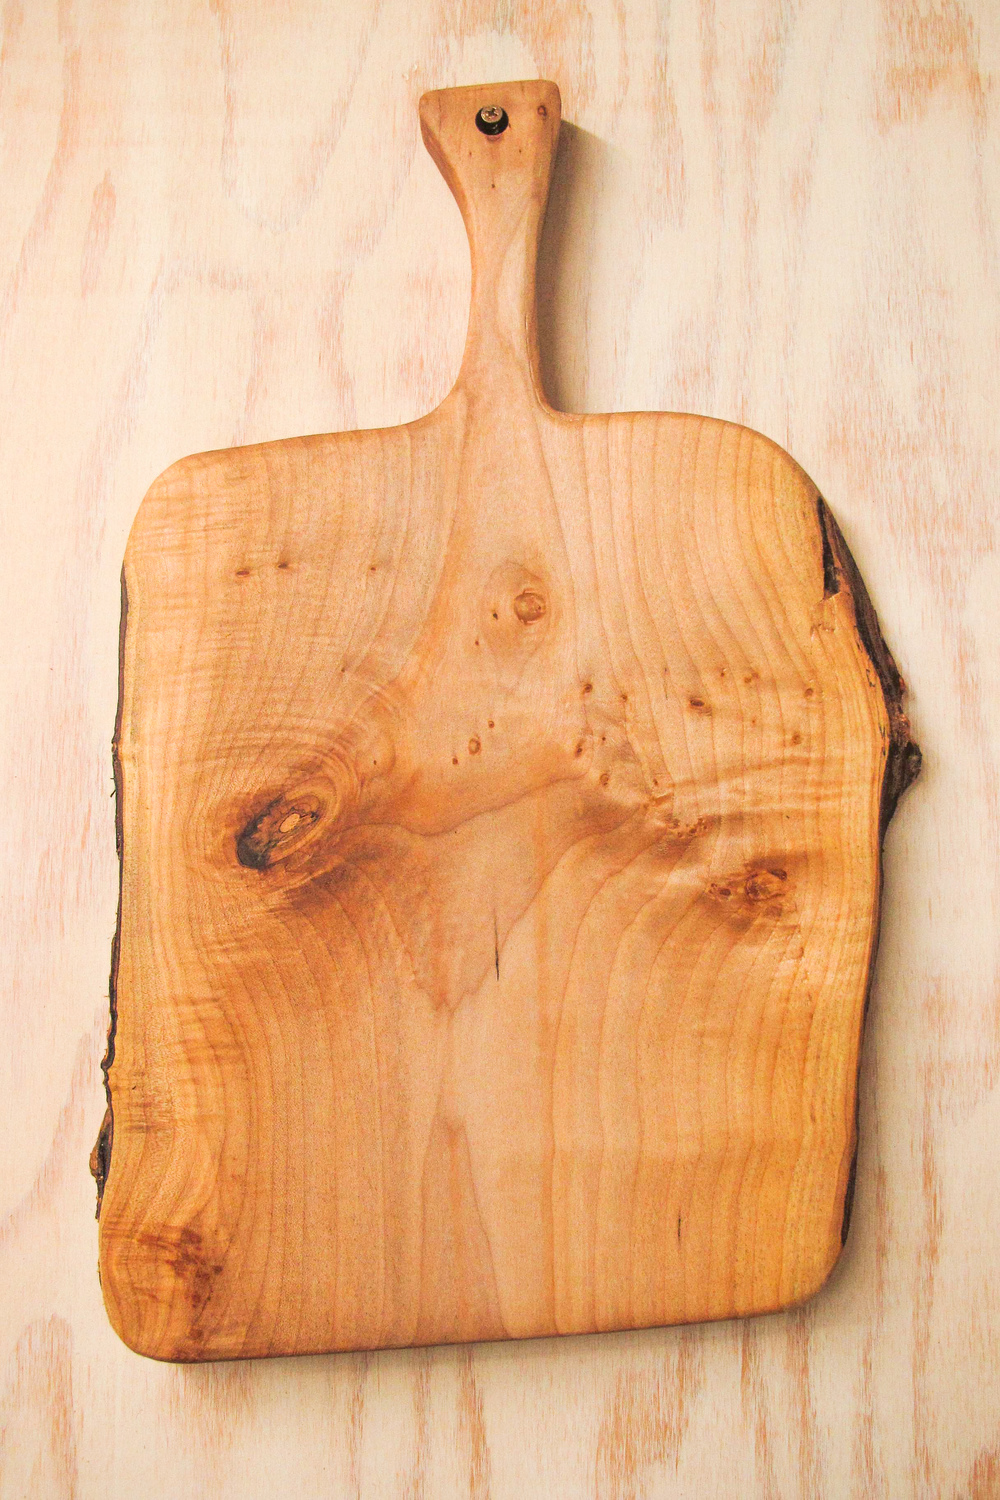 CuttingBoard23.jpg